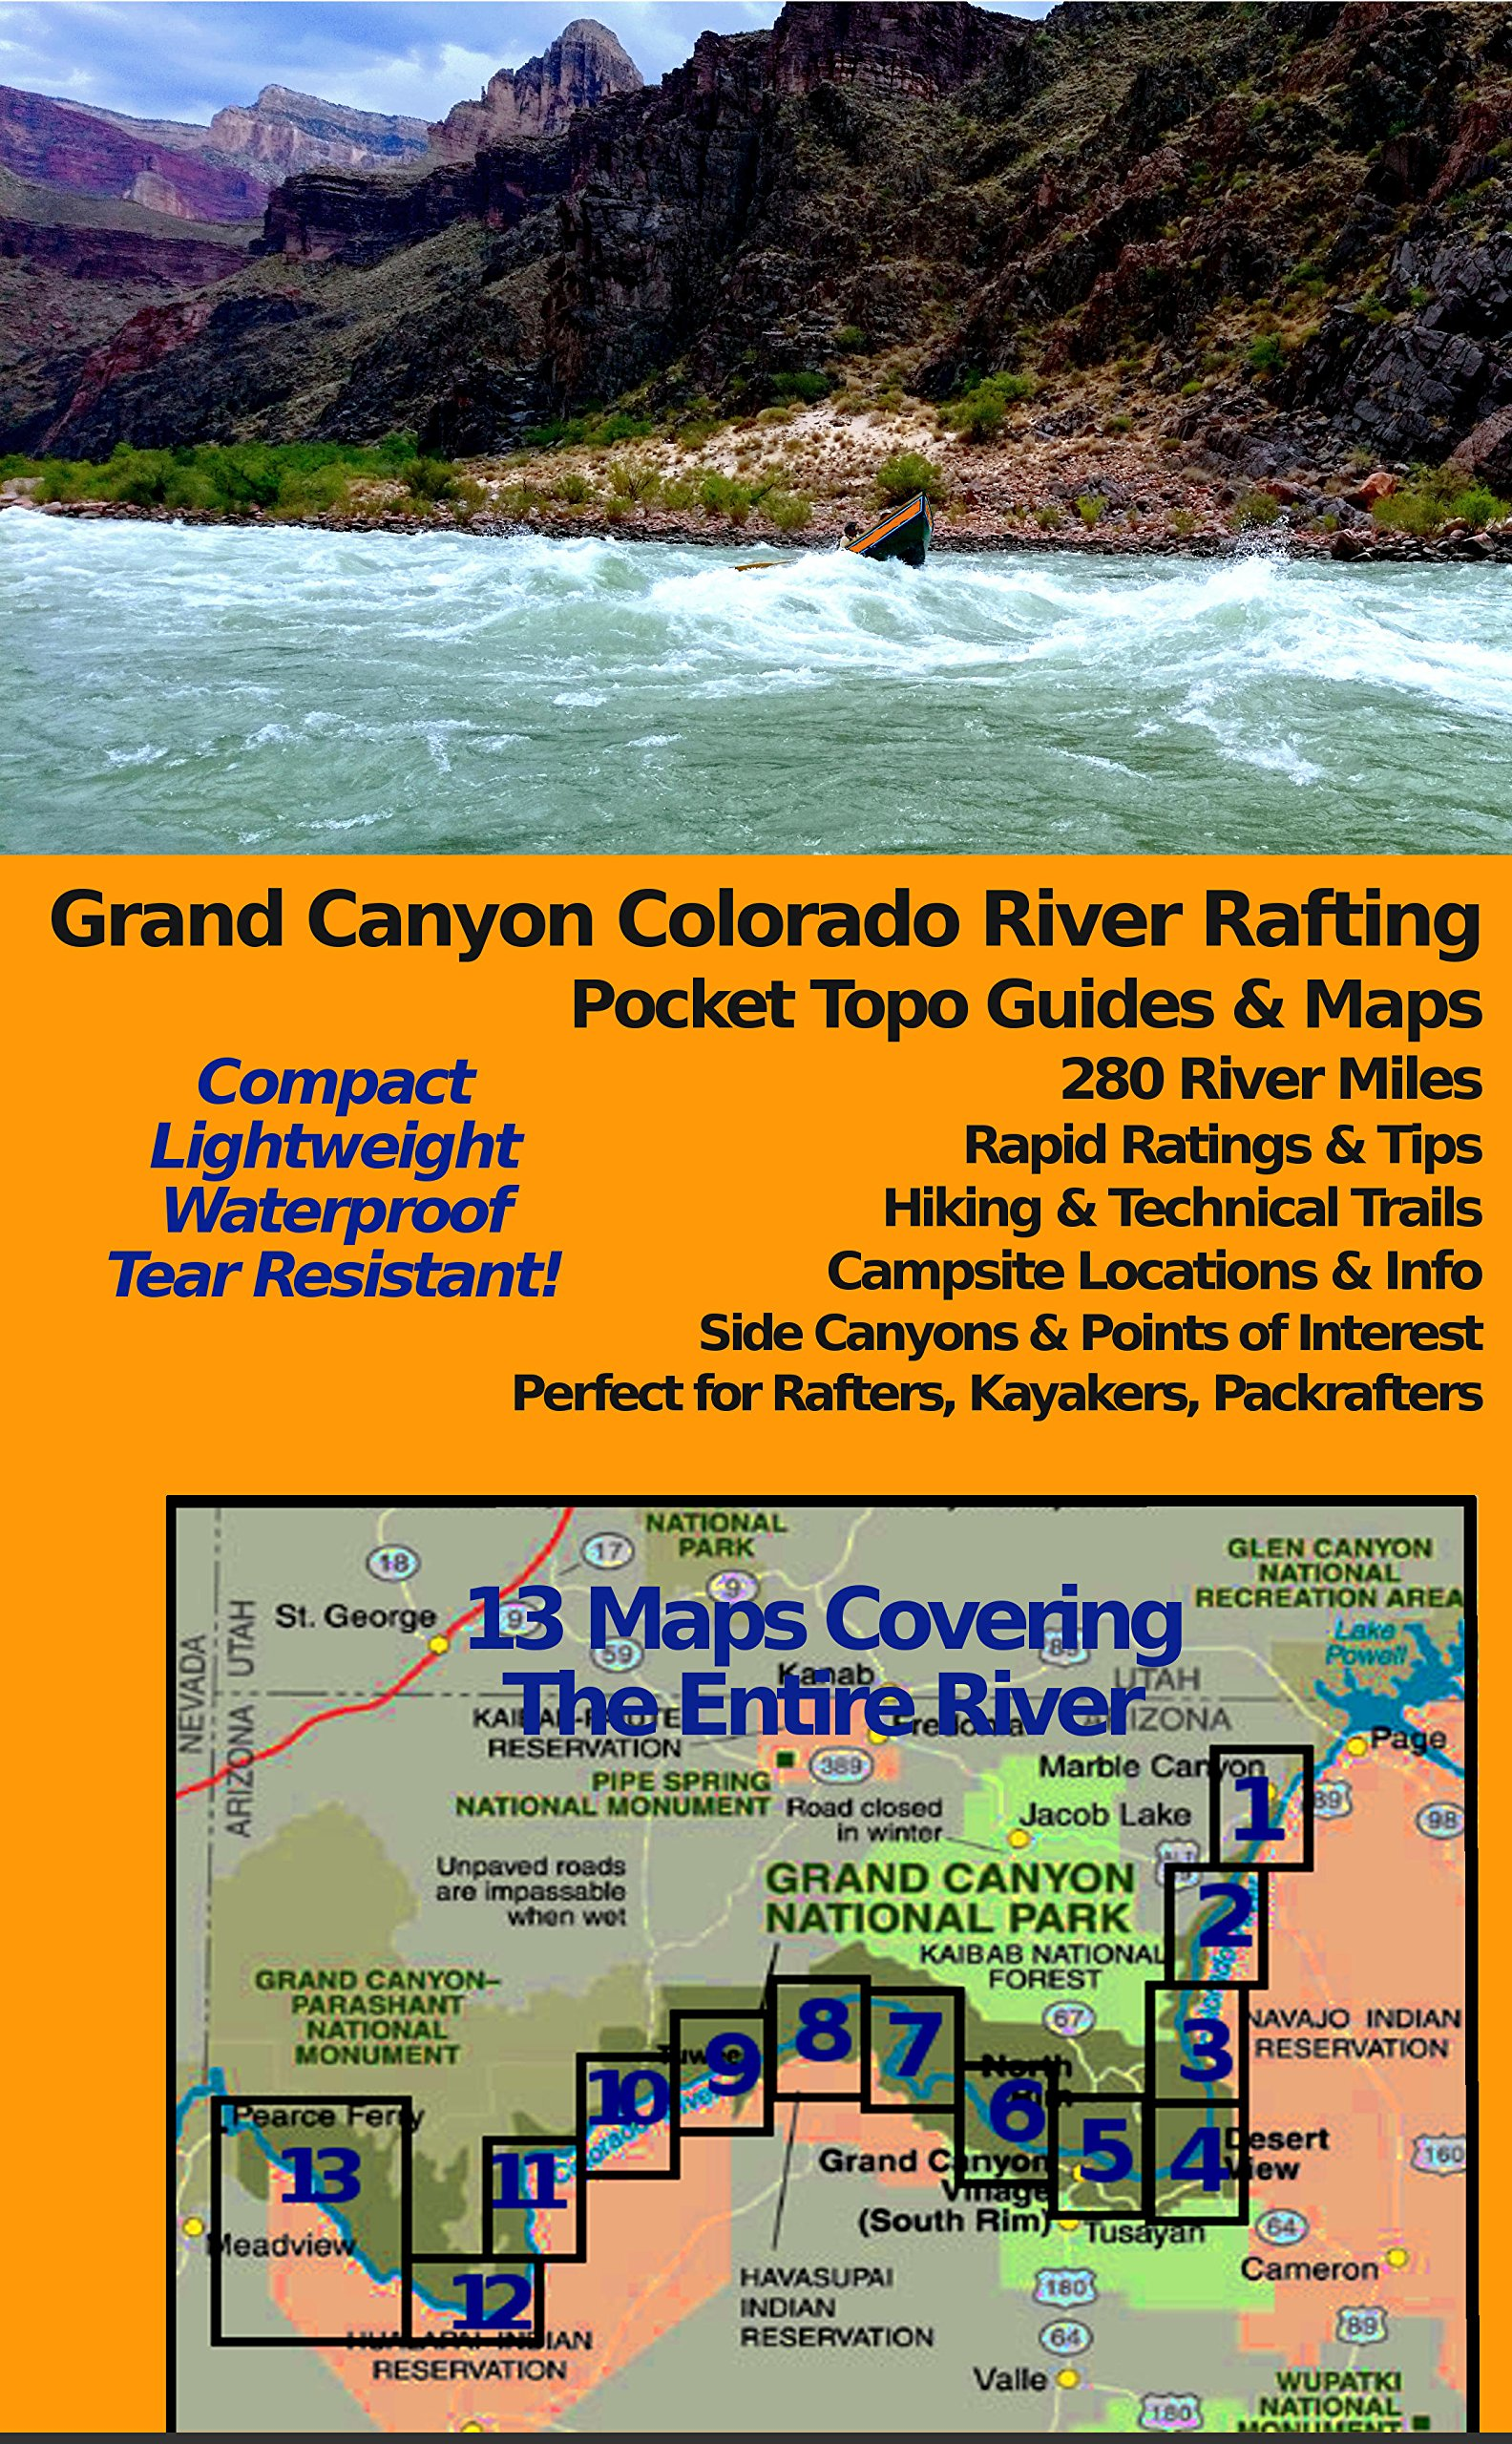 Grand Canyon Colorado River Rafting Pocket Topo Guides & Maps (12x18'' Tear-Resistant / Waterproof)